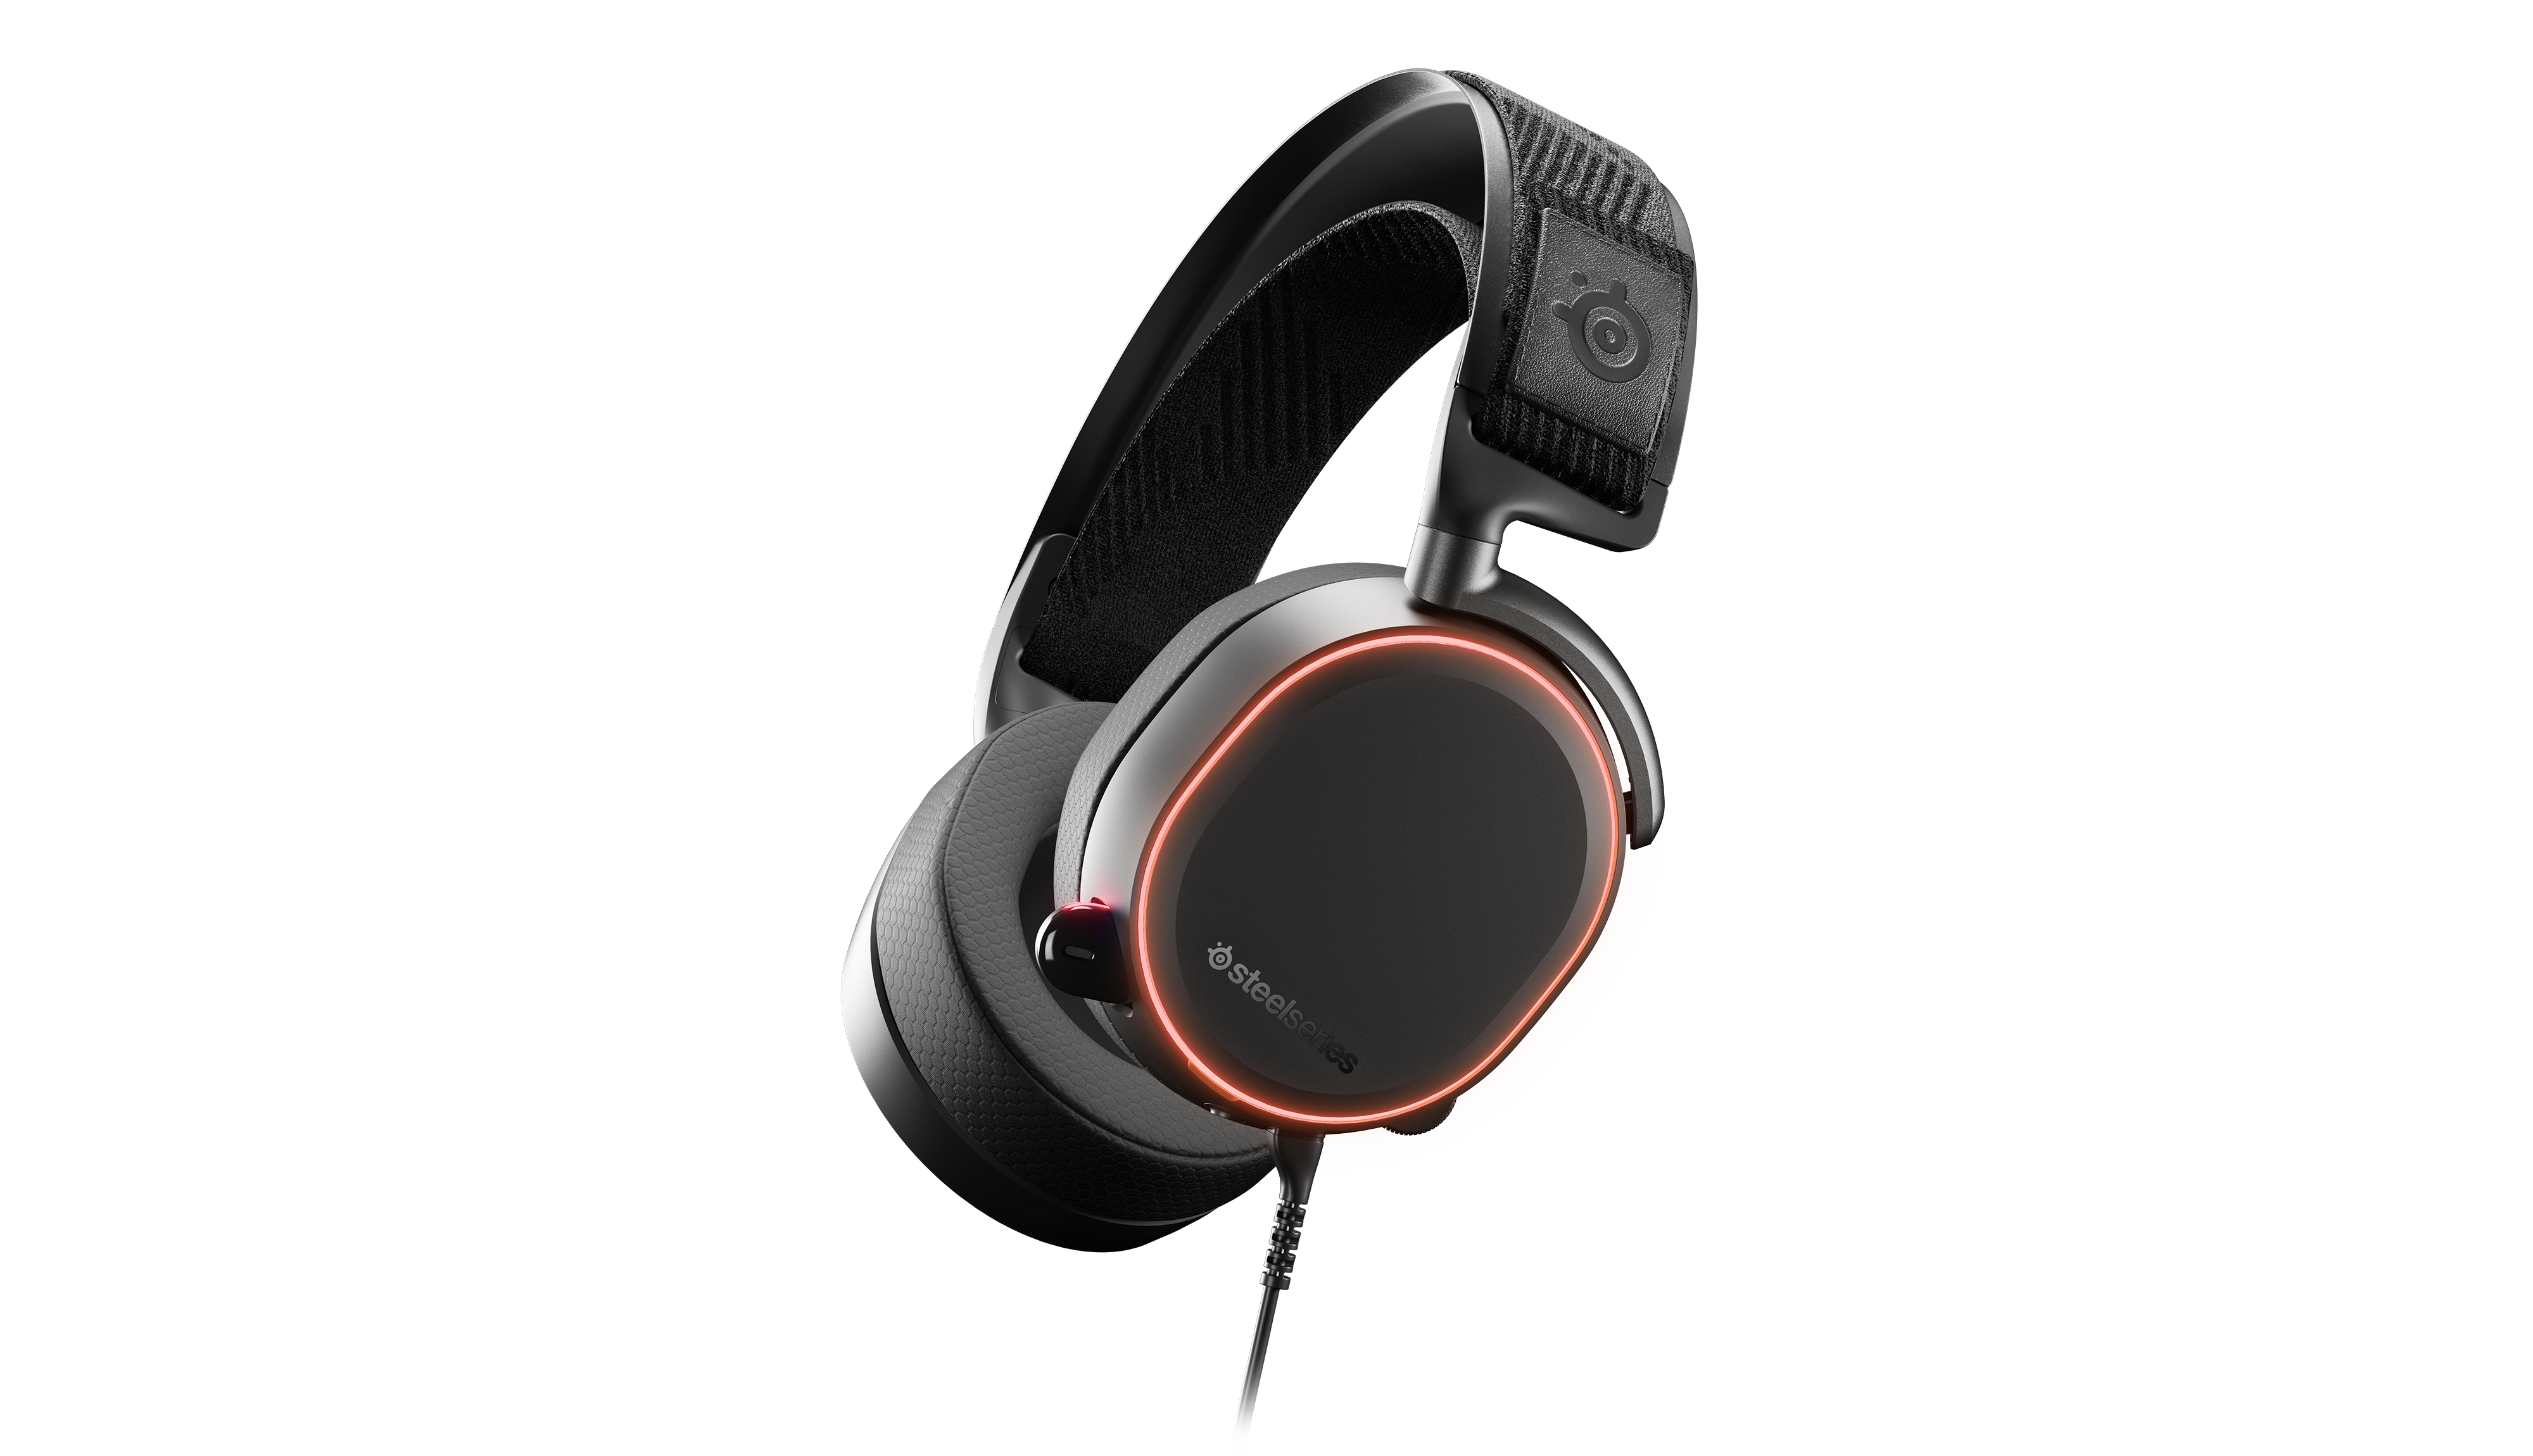 Steelseries Arctis Pro Headset Full Size Wired Usb 35 Mm Dell Studio Xps Desktop Wiring Diagram Jack United States